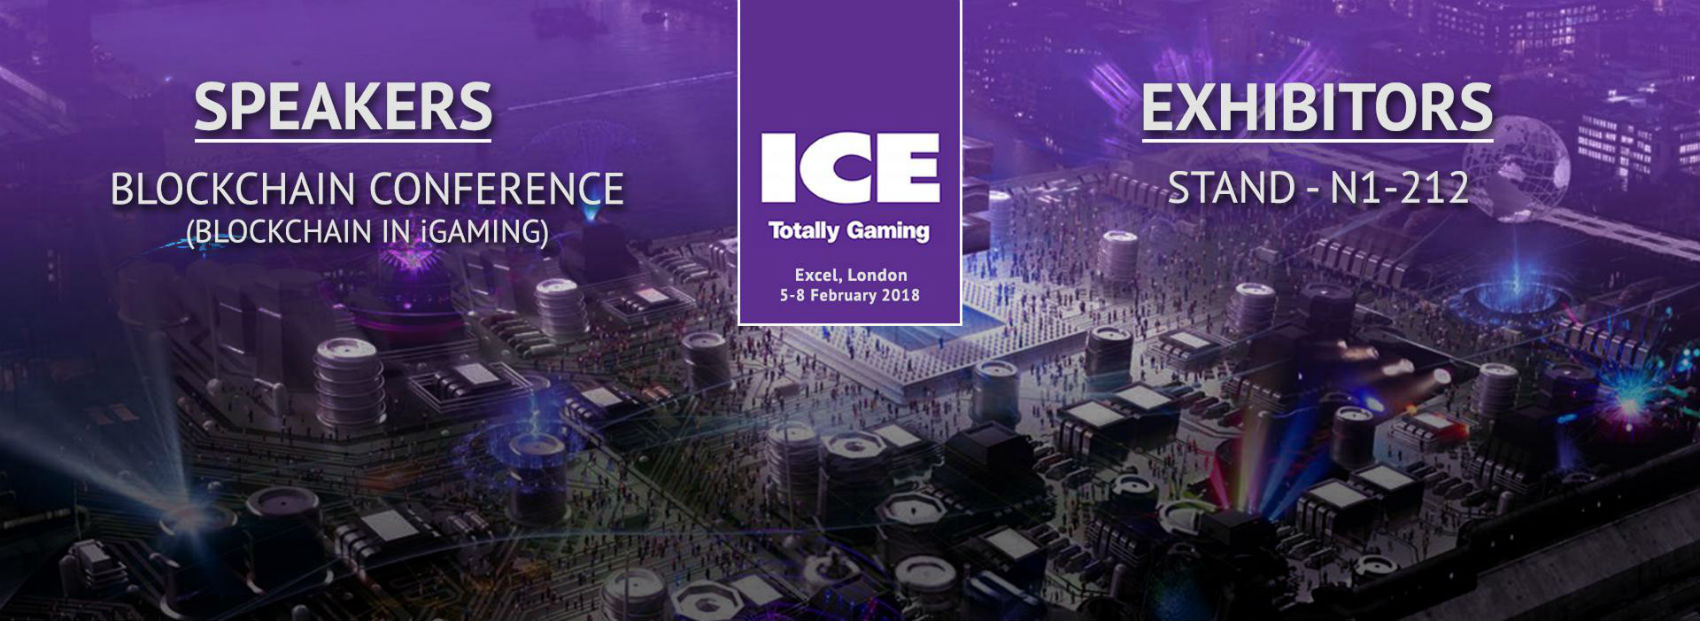 ICE Gaming Conference – London 5-7 February 2019